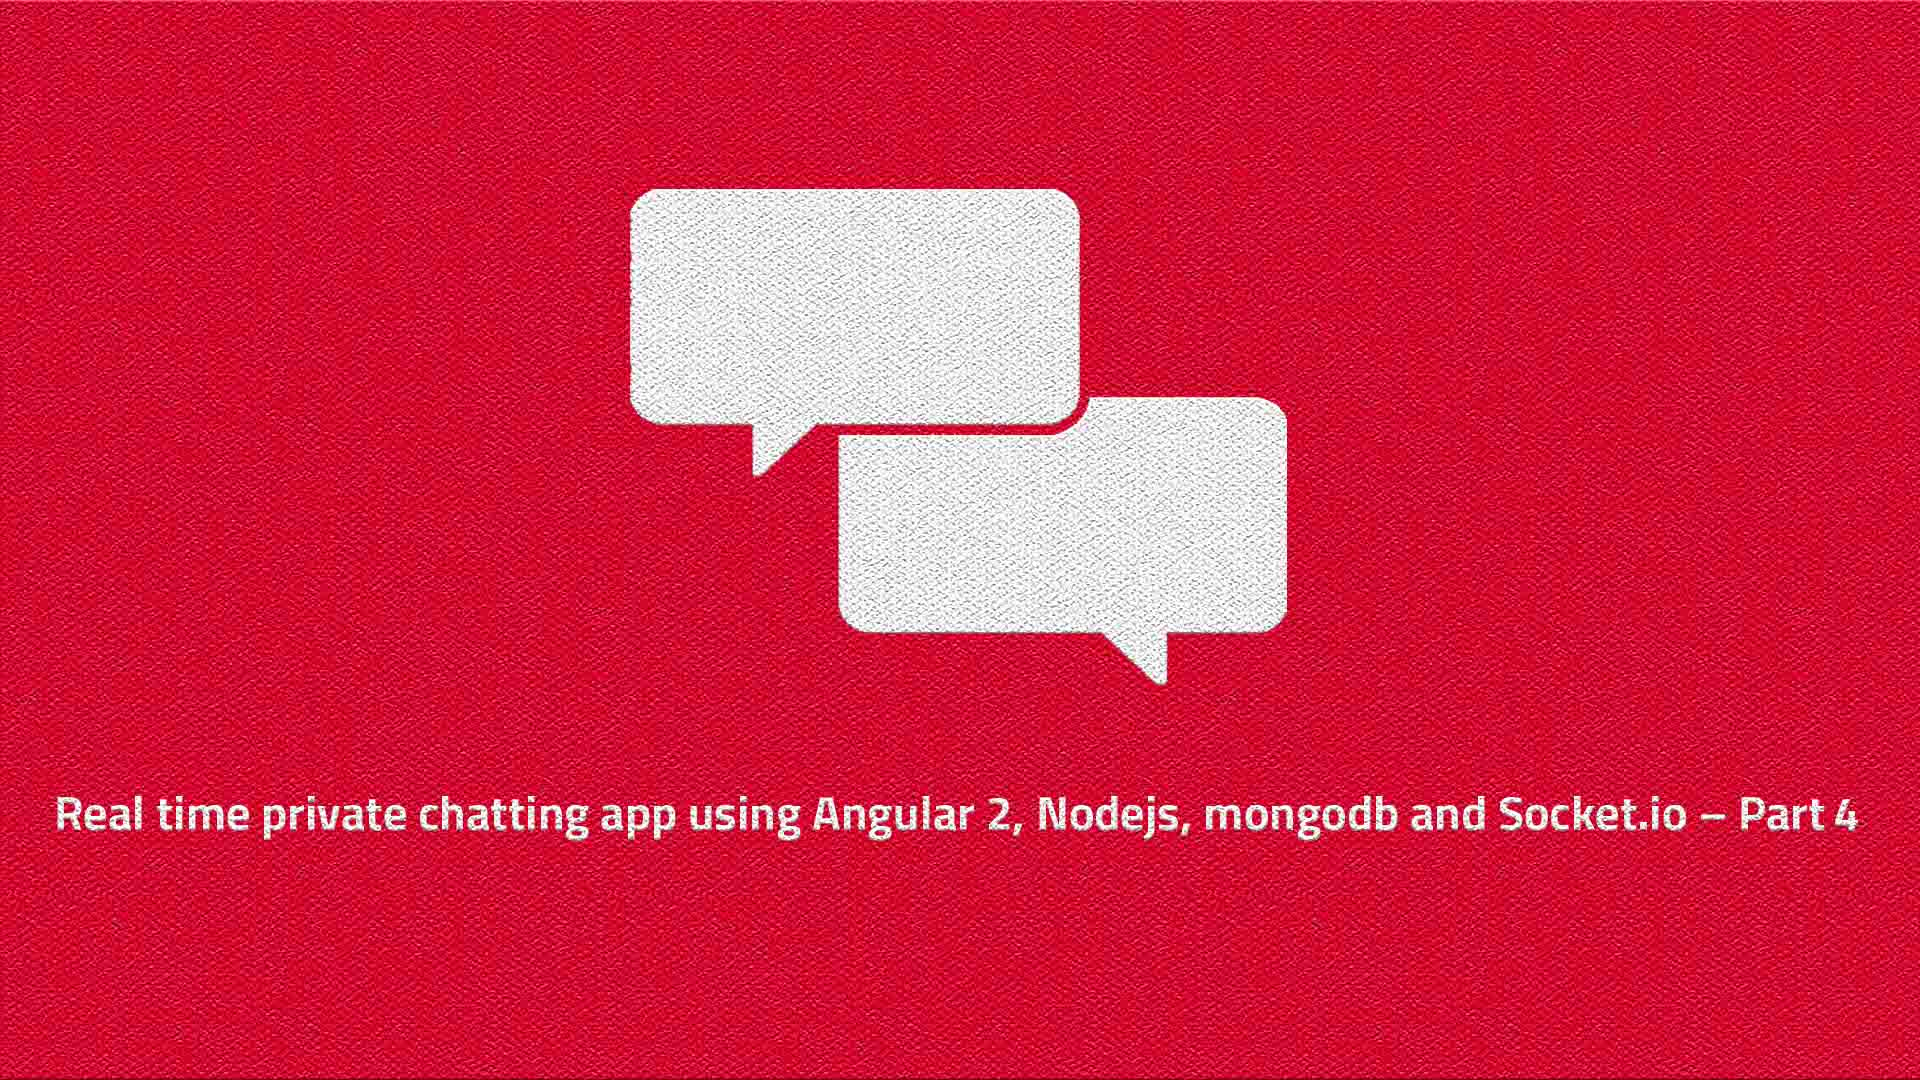 Real time private chatting app using Angular 2, Nodejs